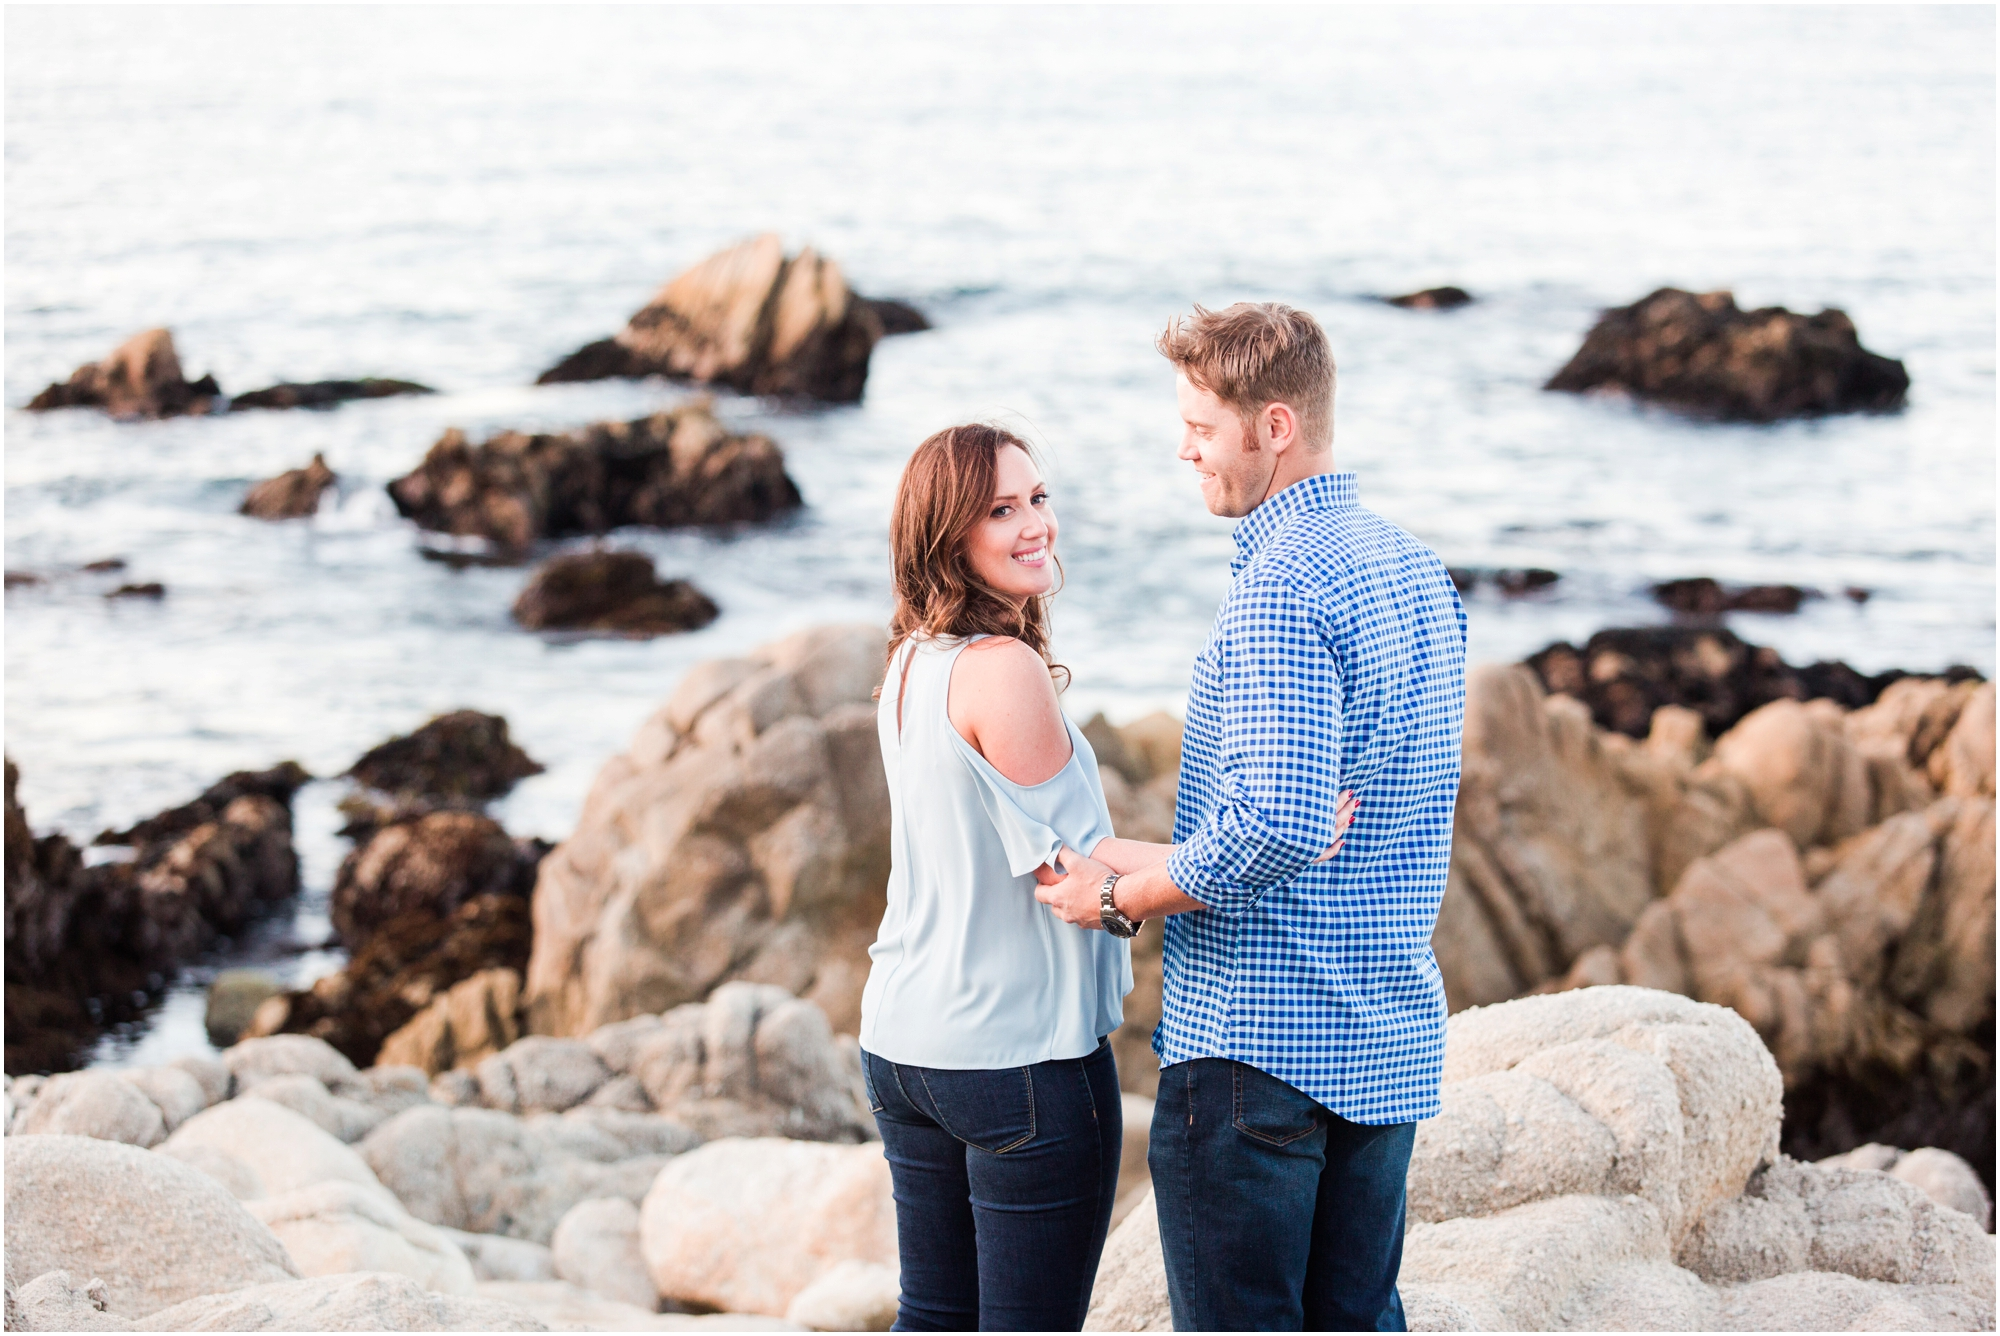 Berwick Park Monterey engagement pictures by Briana Calderon Photography_2406.jpg